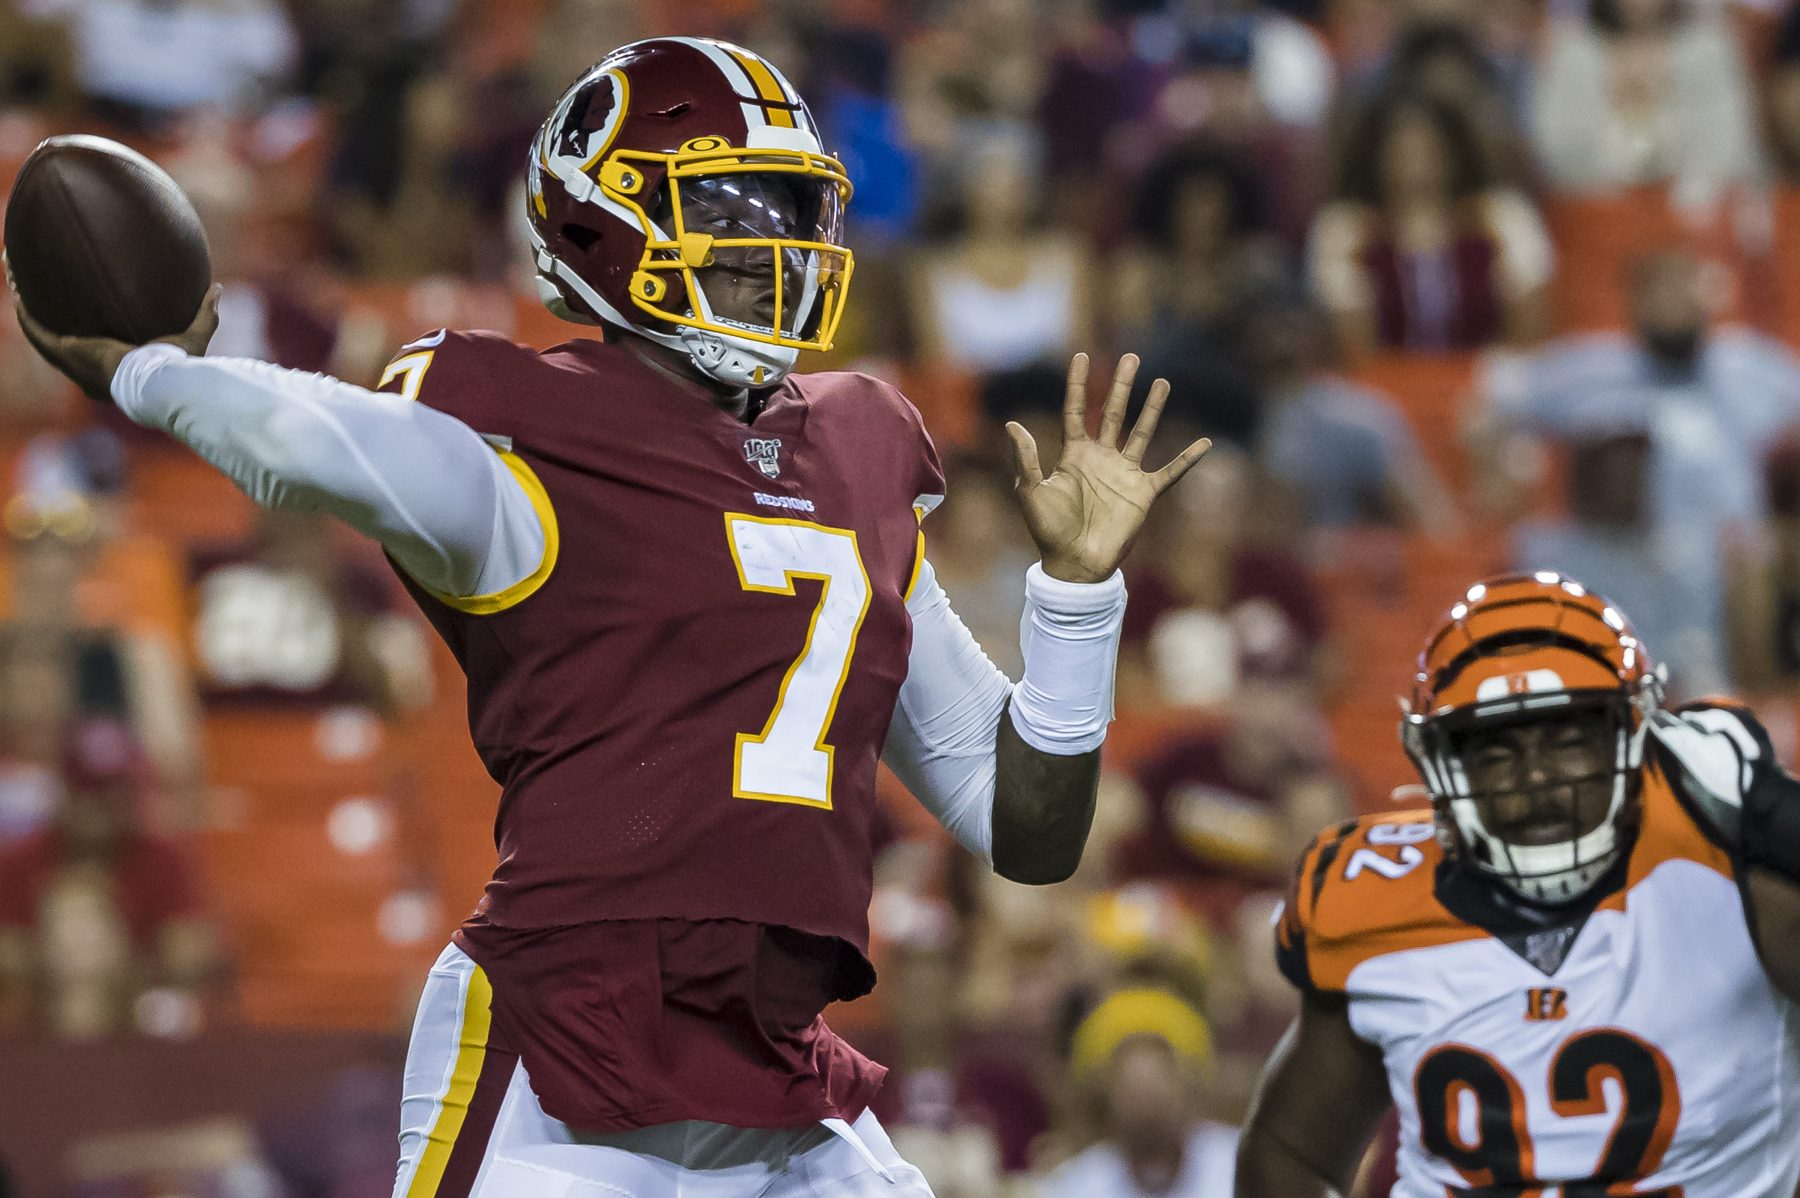 Dwayne haskins - Haskins went 7/14 passing for 114 yards and 1 TD versus the Bengals.